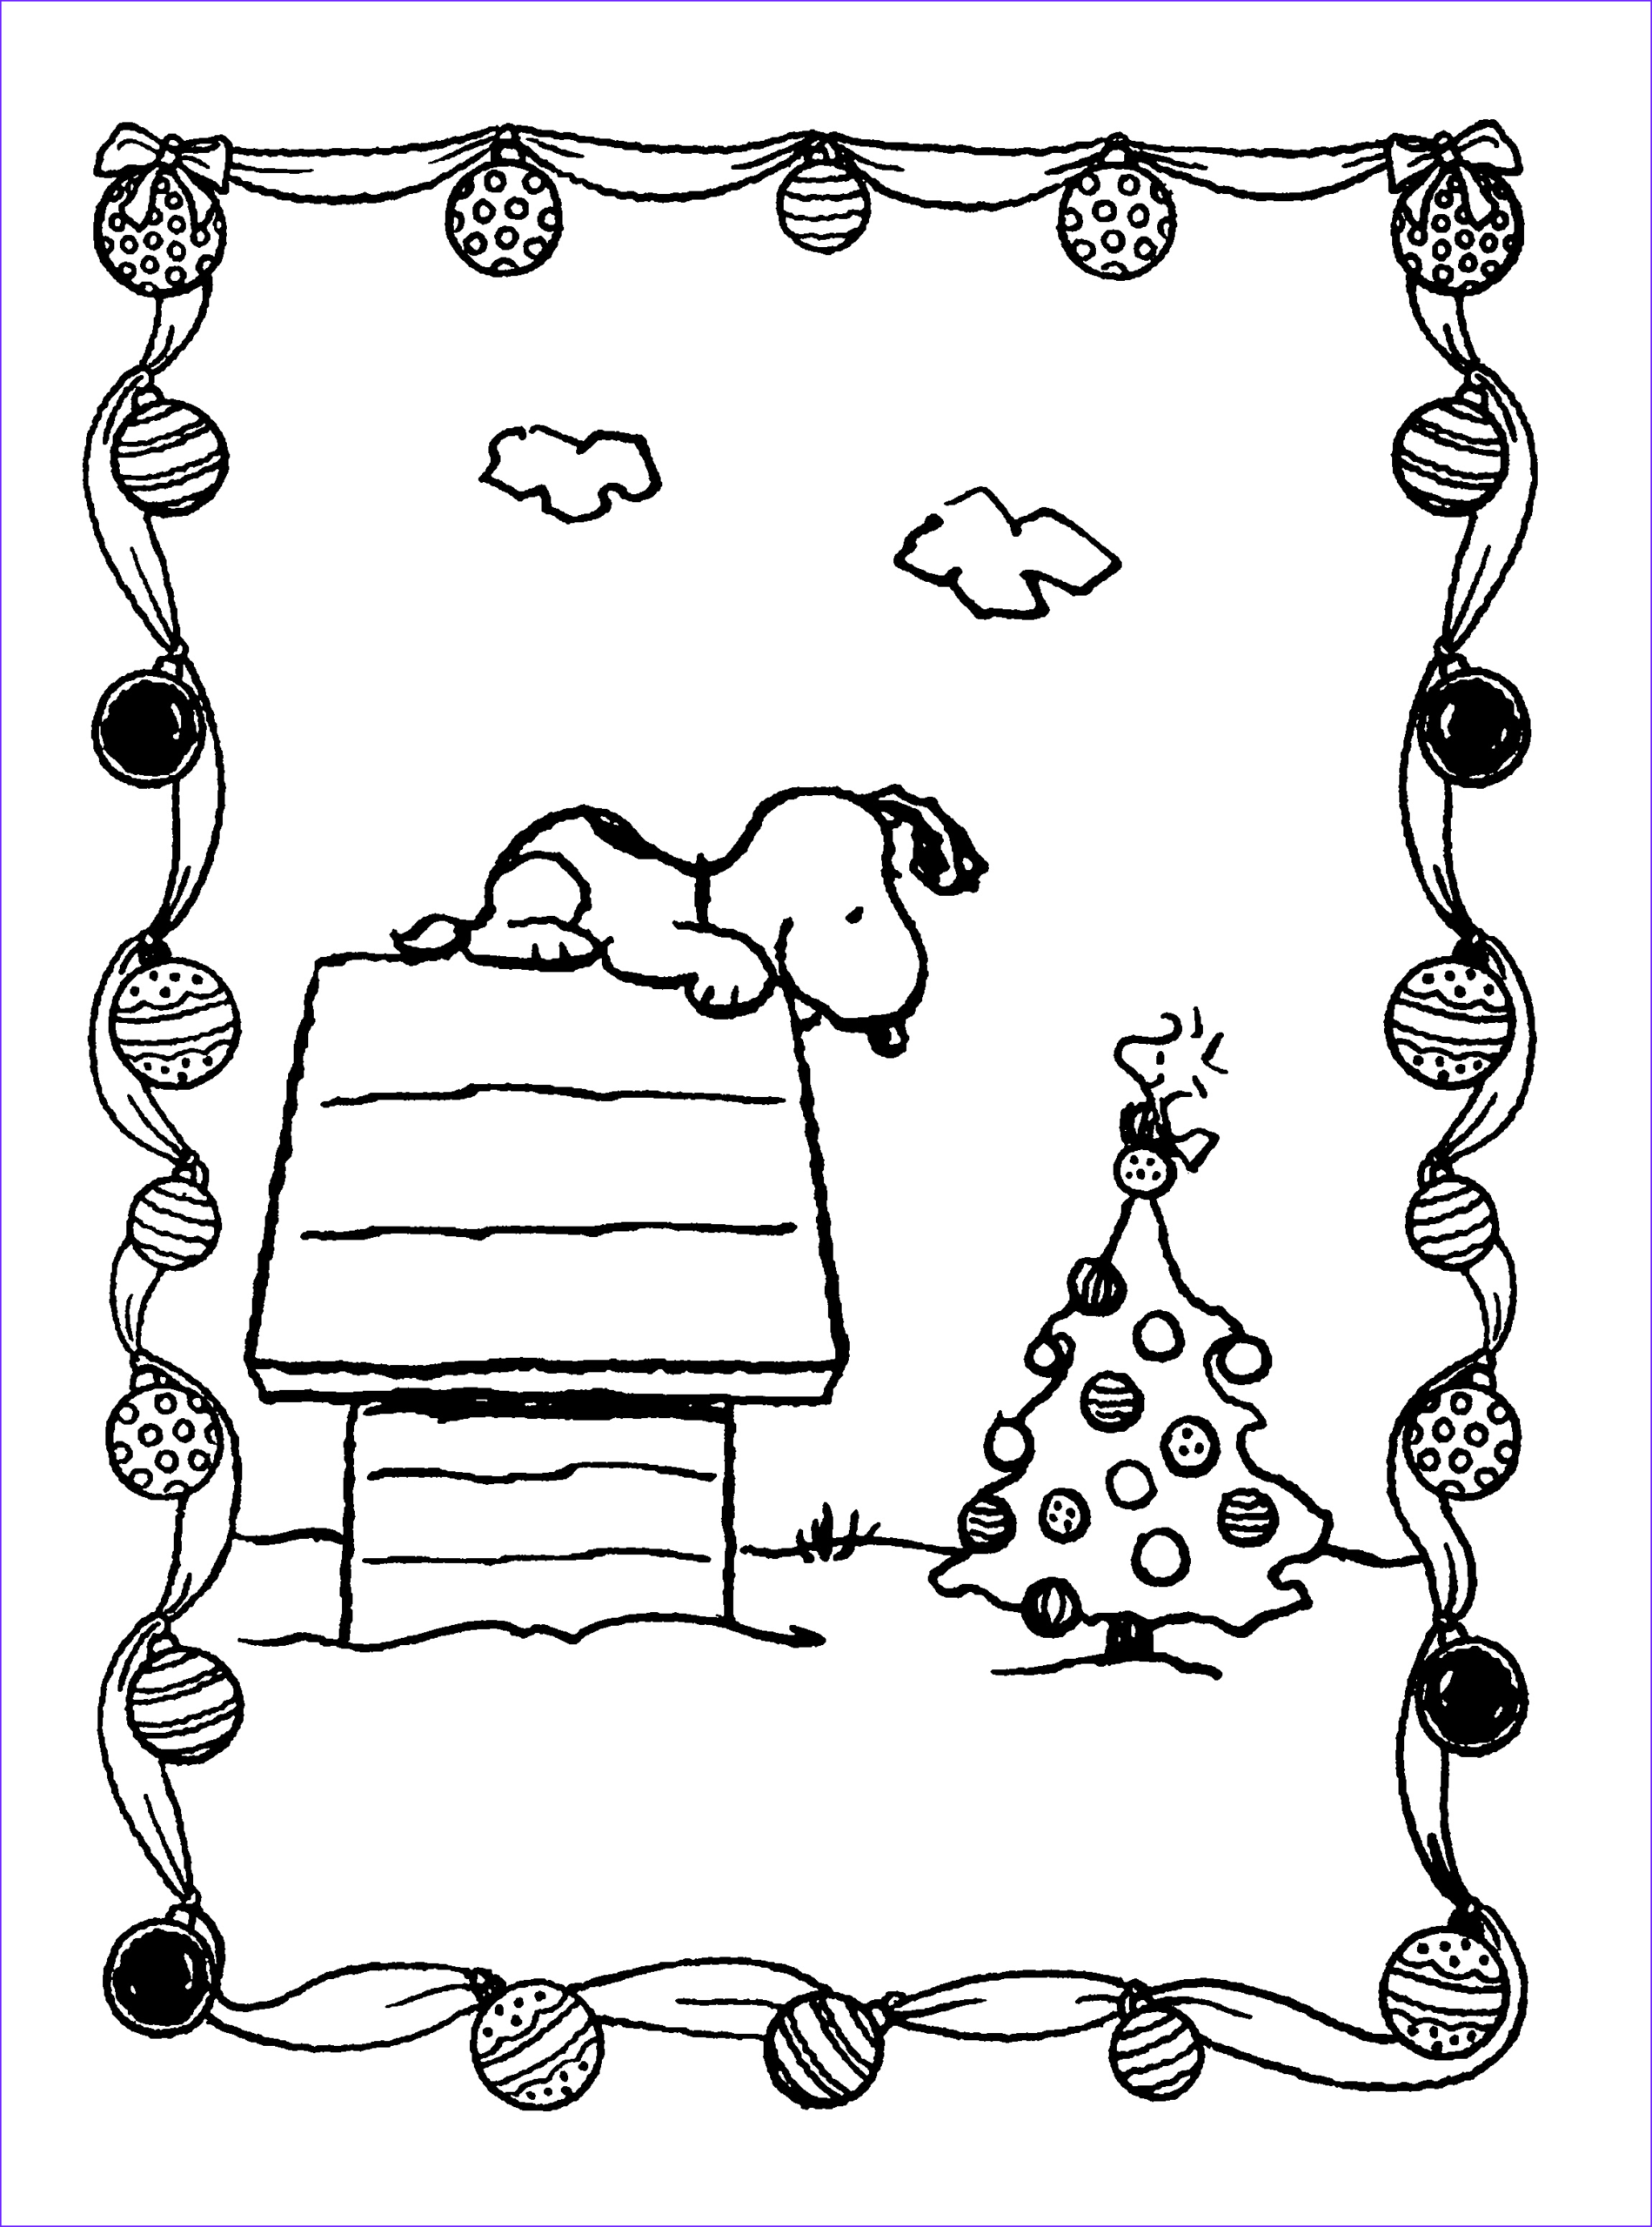 Snoopy Christmas Coloring Page New Photos Peanuts Xmas Coloring And Activity Book